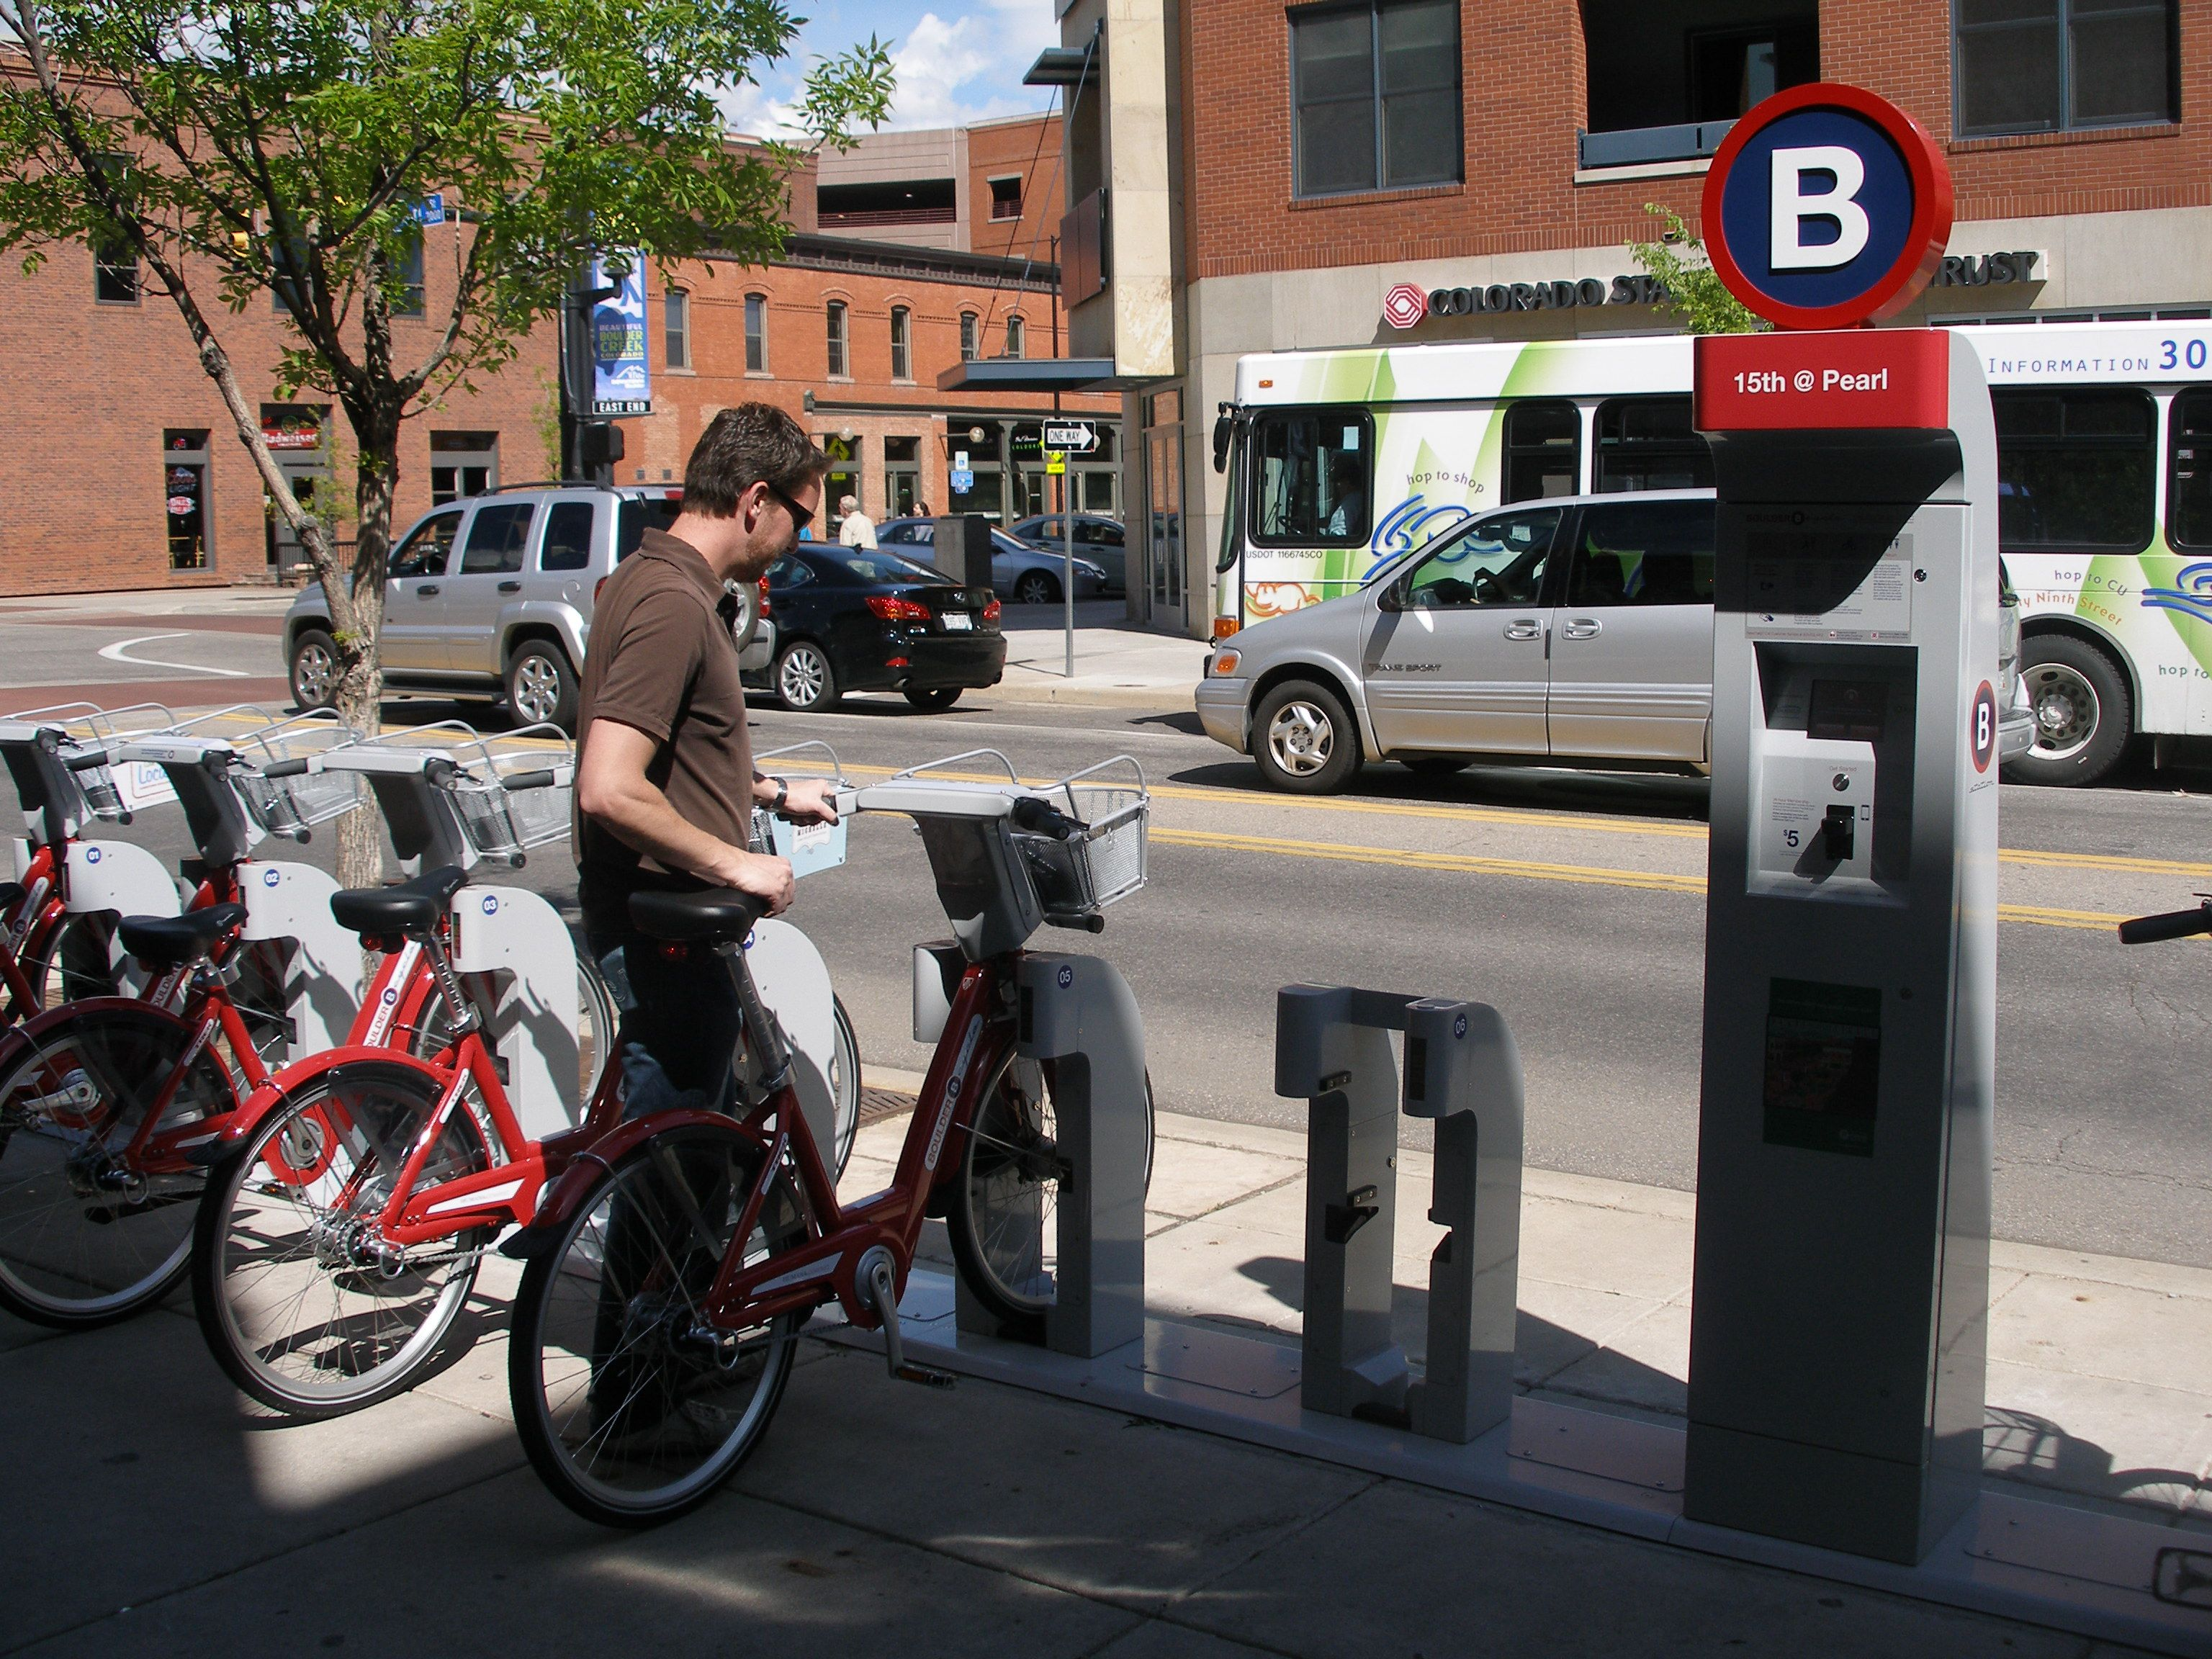 Please help us prioritize locations for ten new B-stations in 2013!